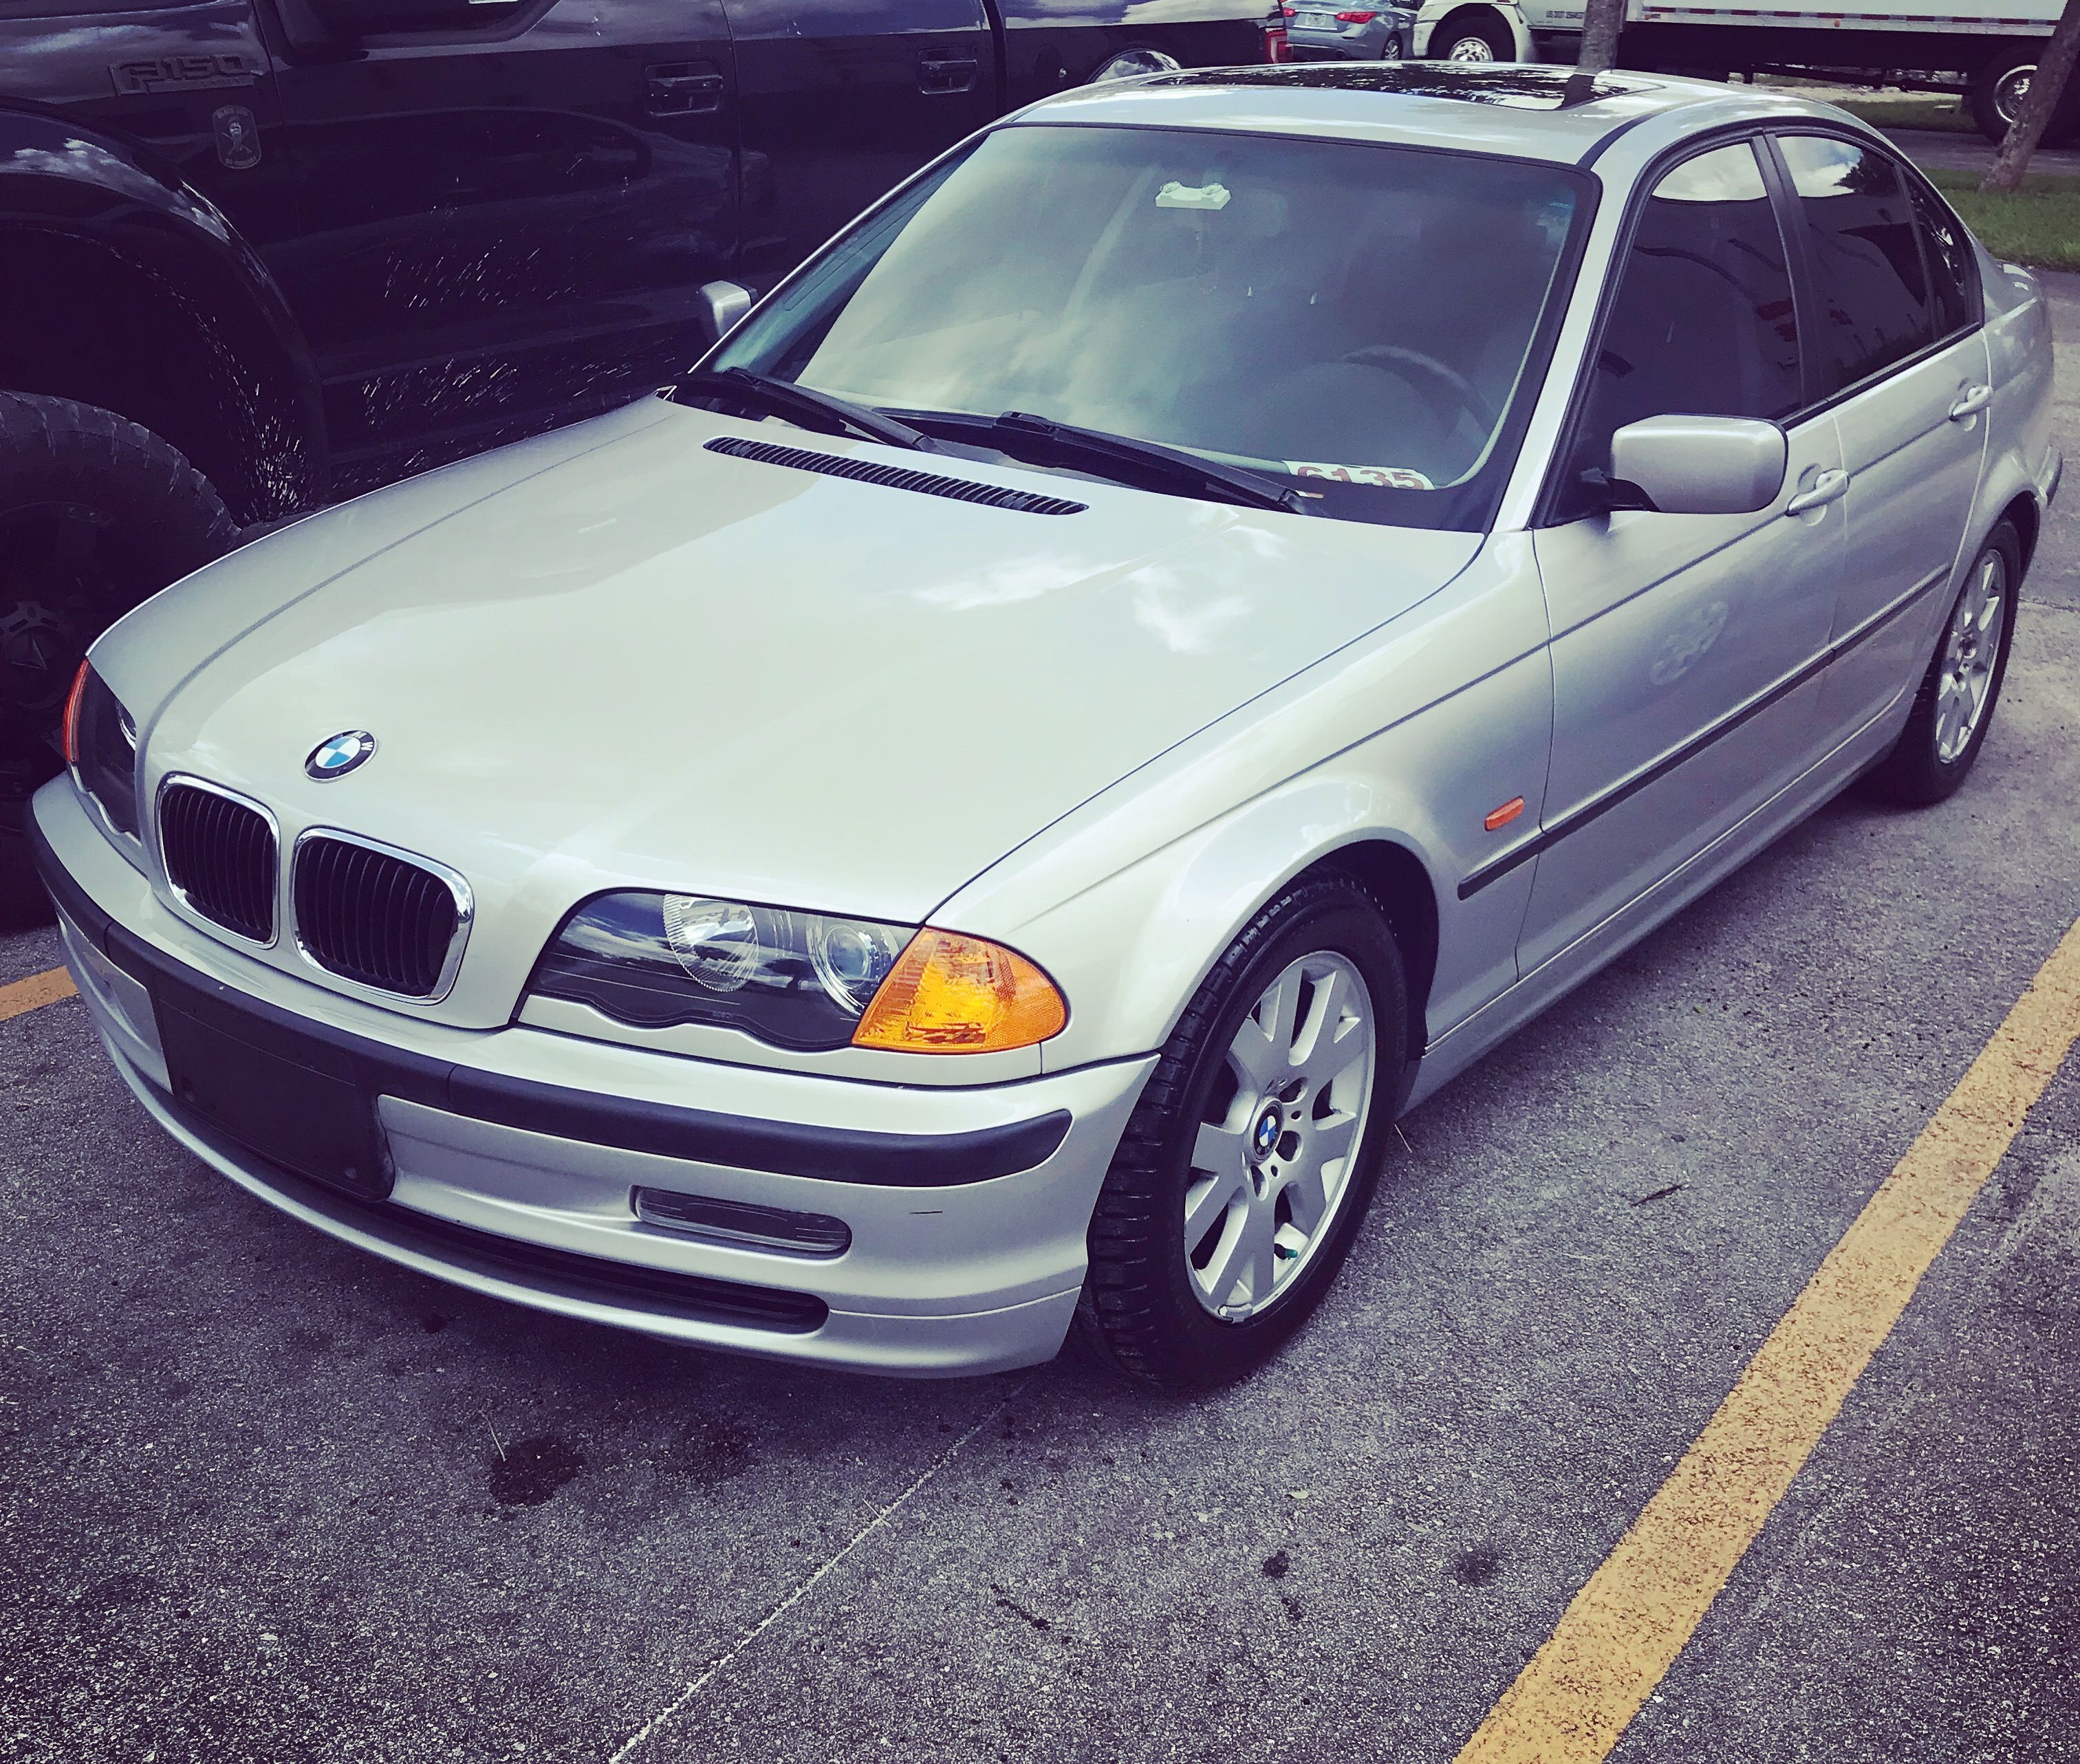 Pin By Shoegamejay On Cars In 2020 Bmw Bmw 323i Auto Repair Shop